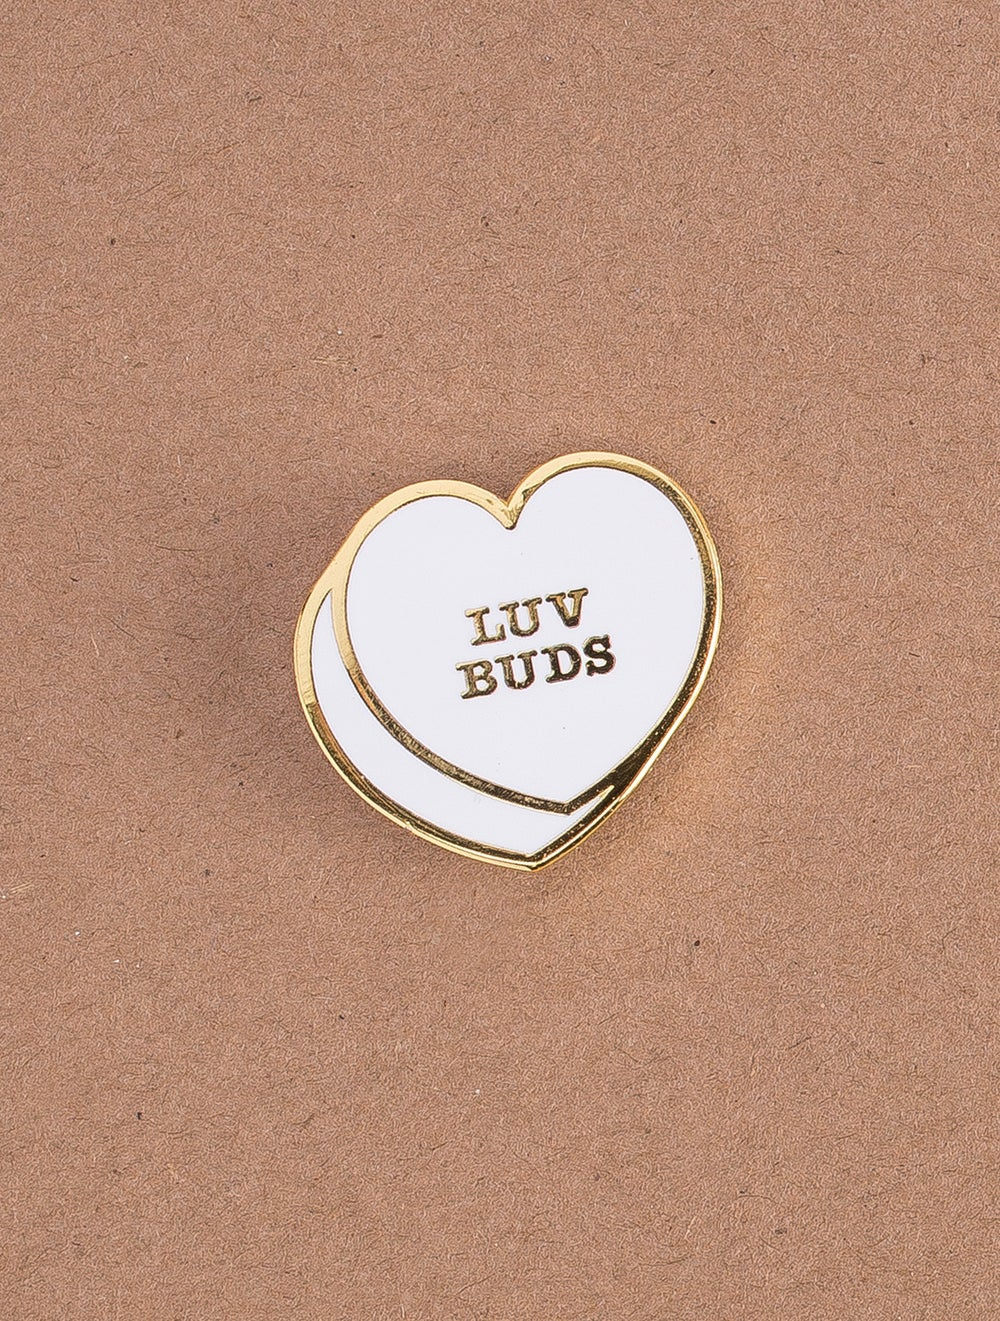 Image of Love Buds Pin